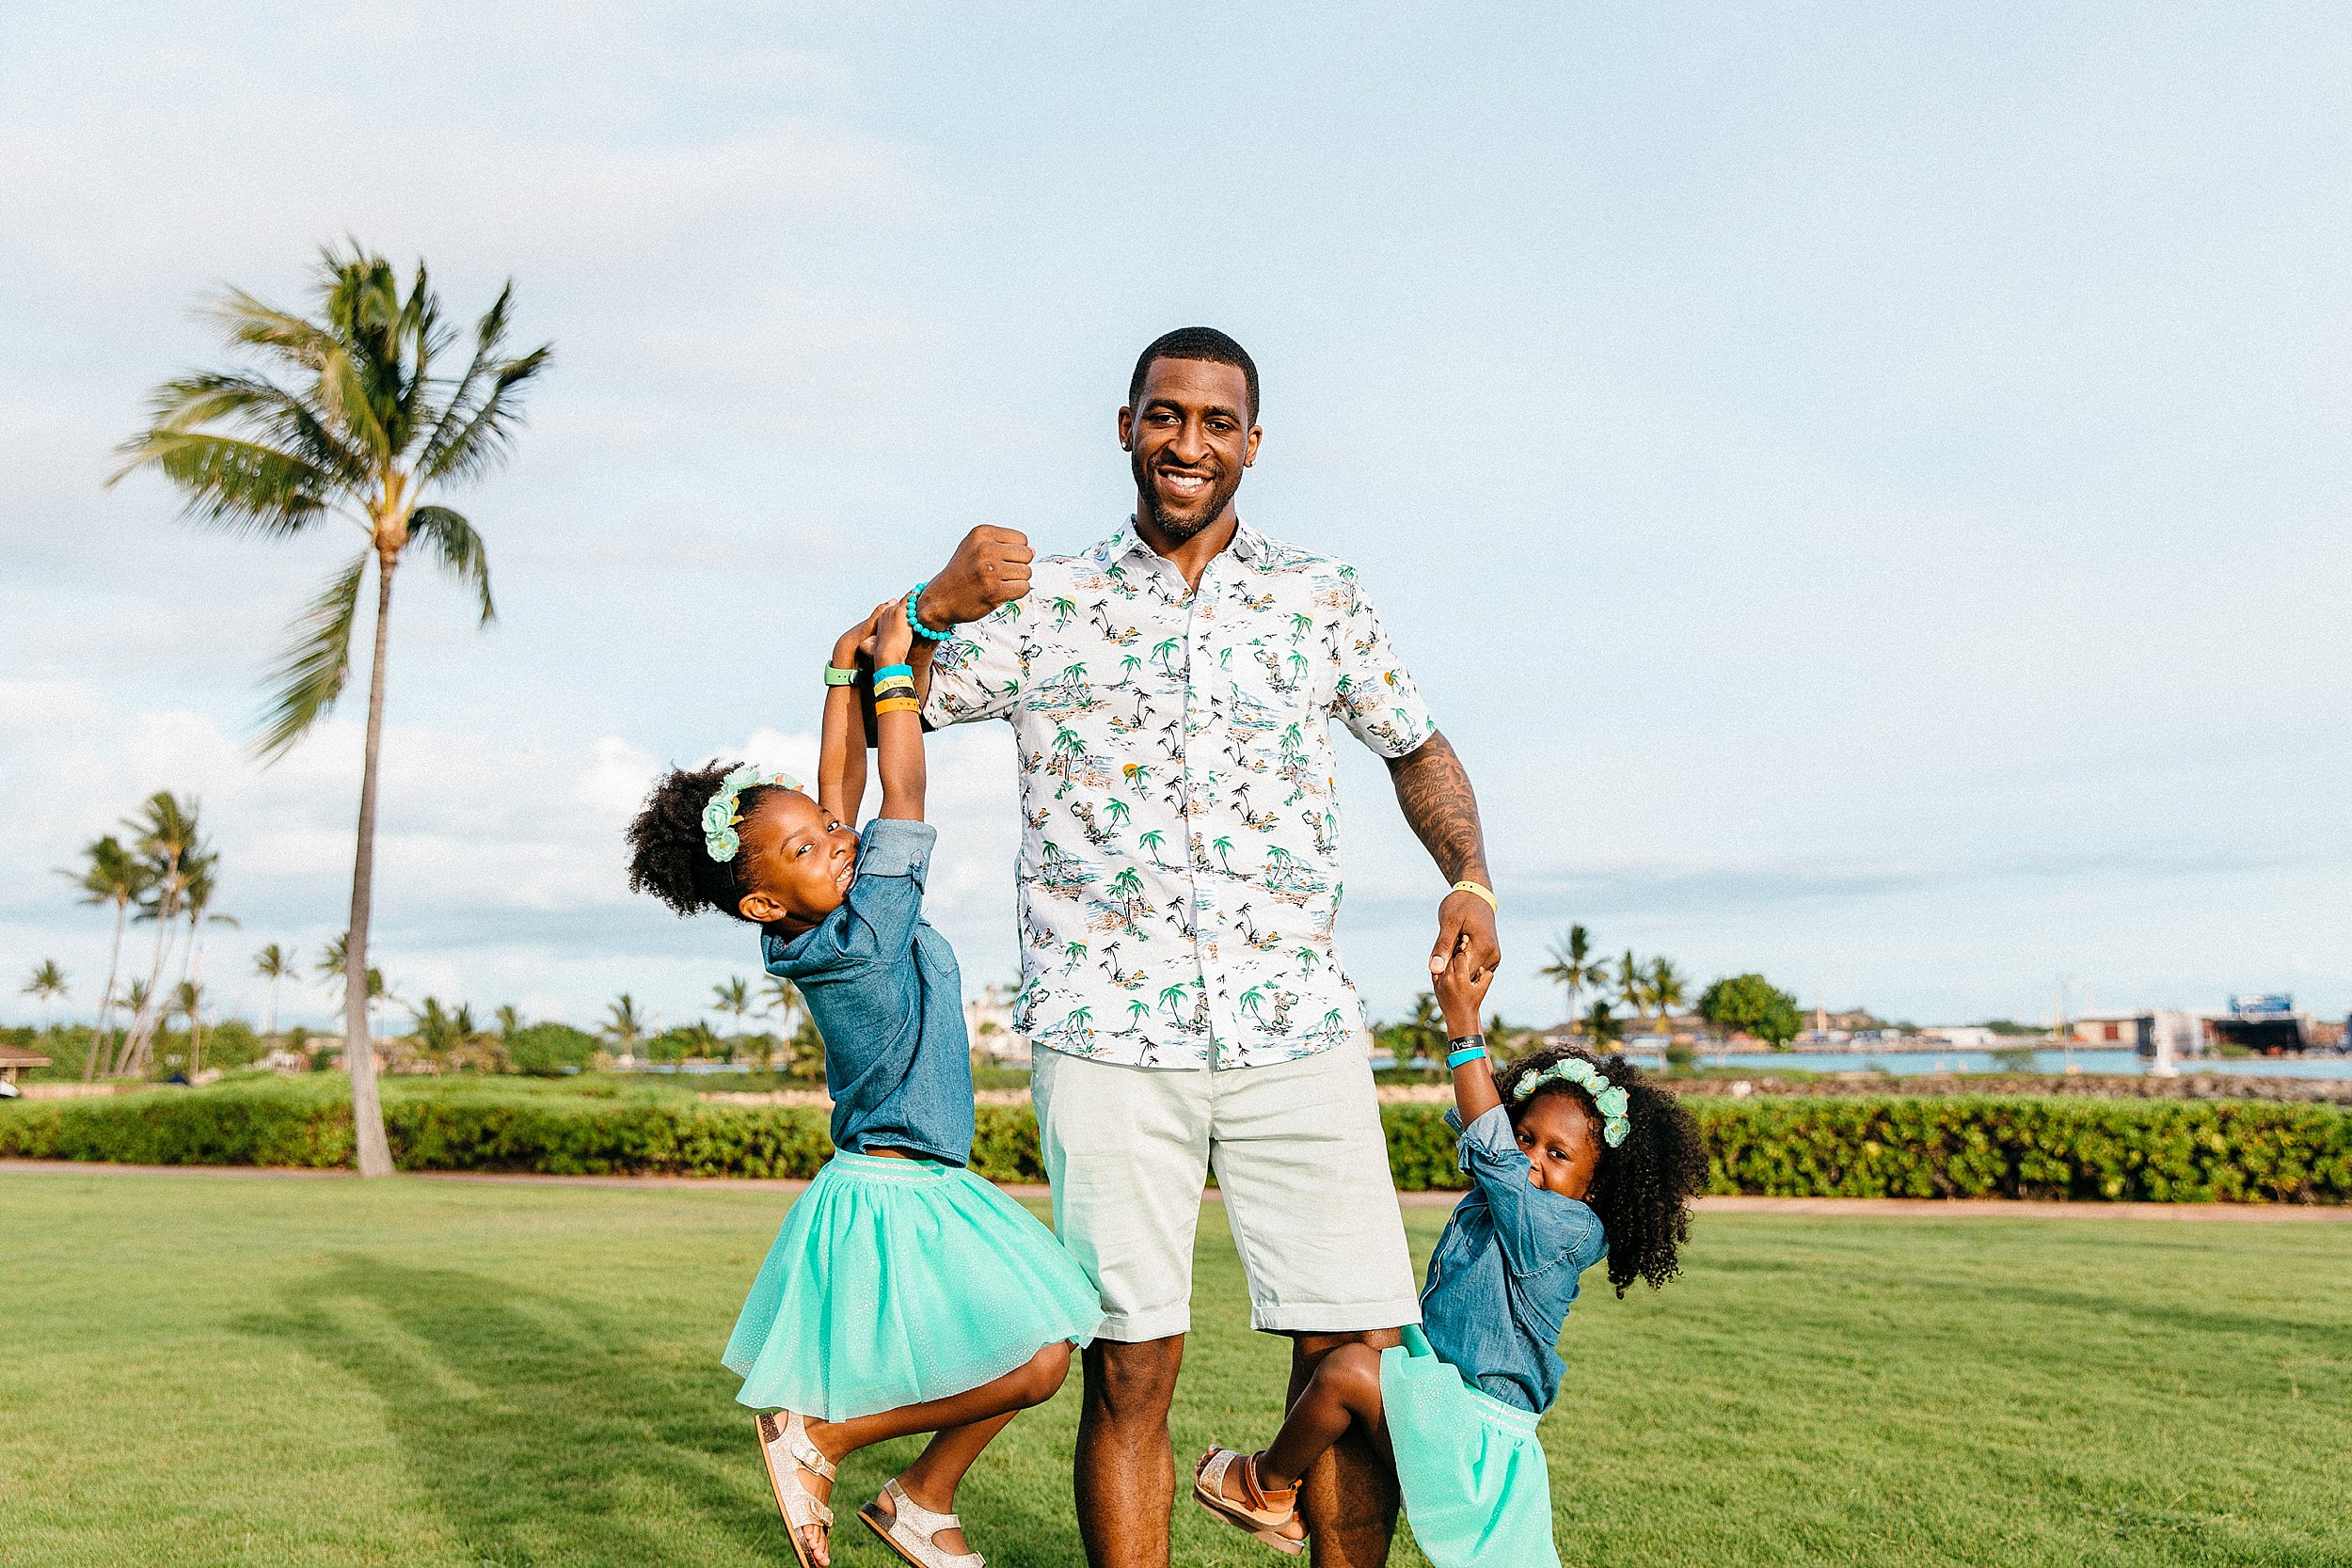 Dad and daughters together near palm trees and the beach at Ko Olina.